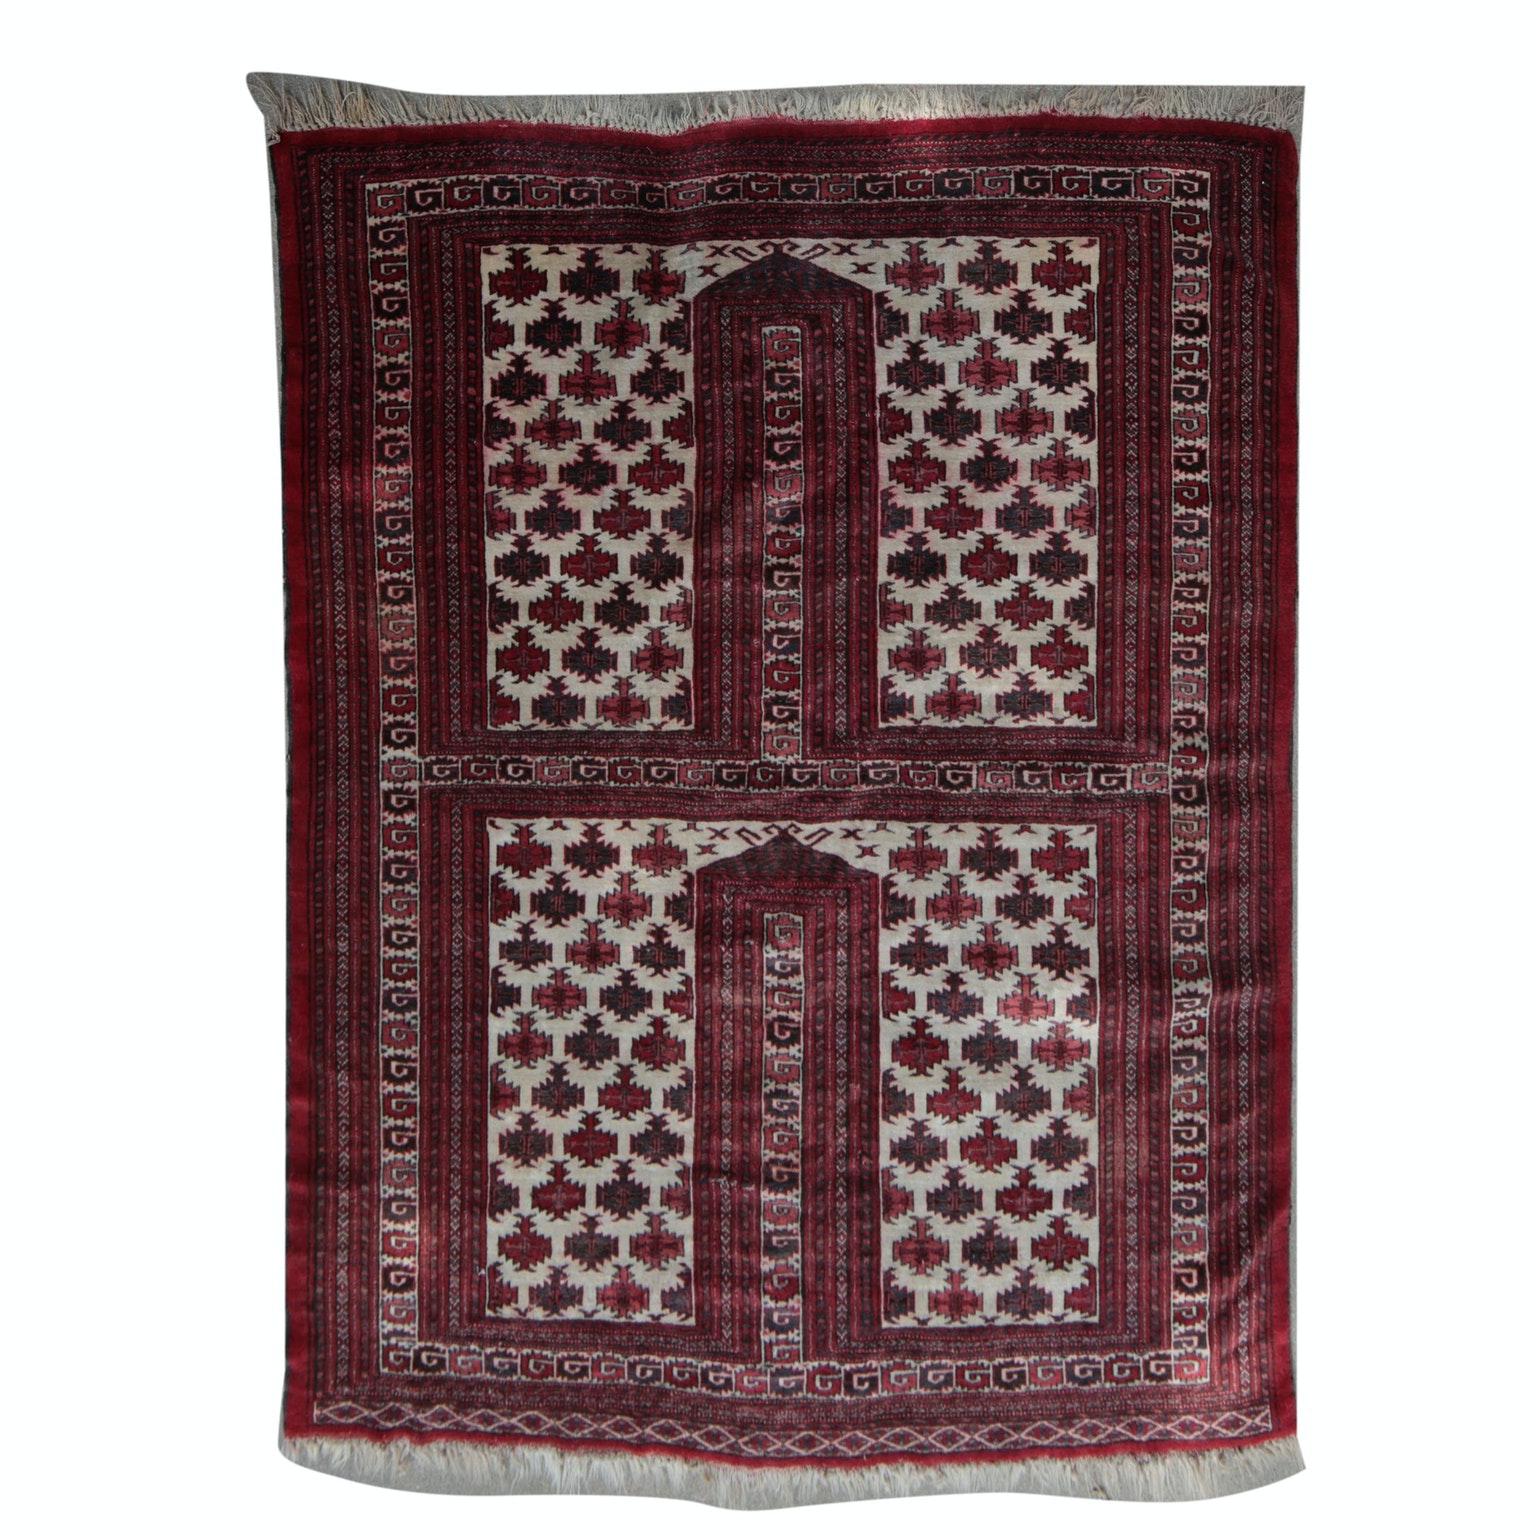 Handwoven Persian Beshir Prayer Rug